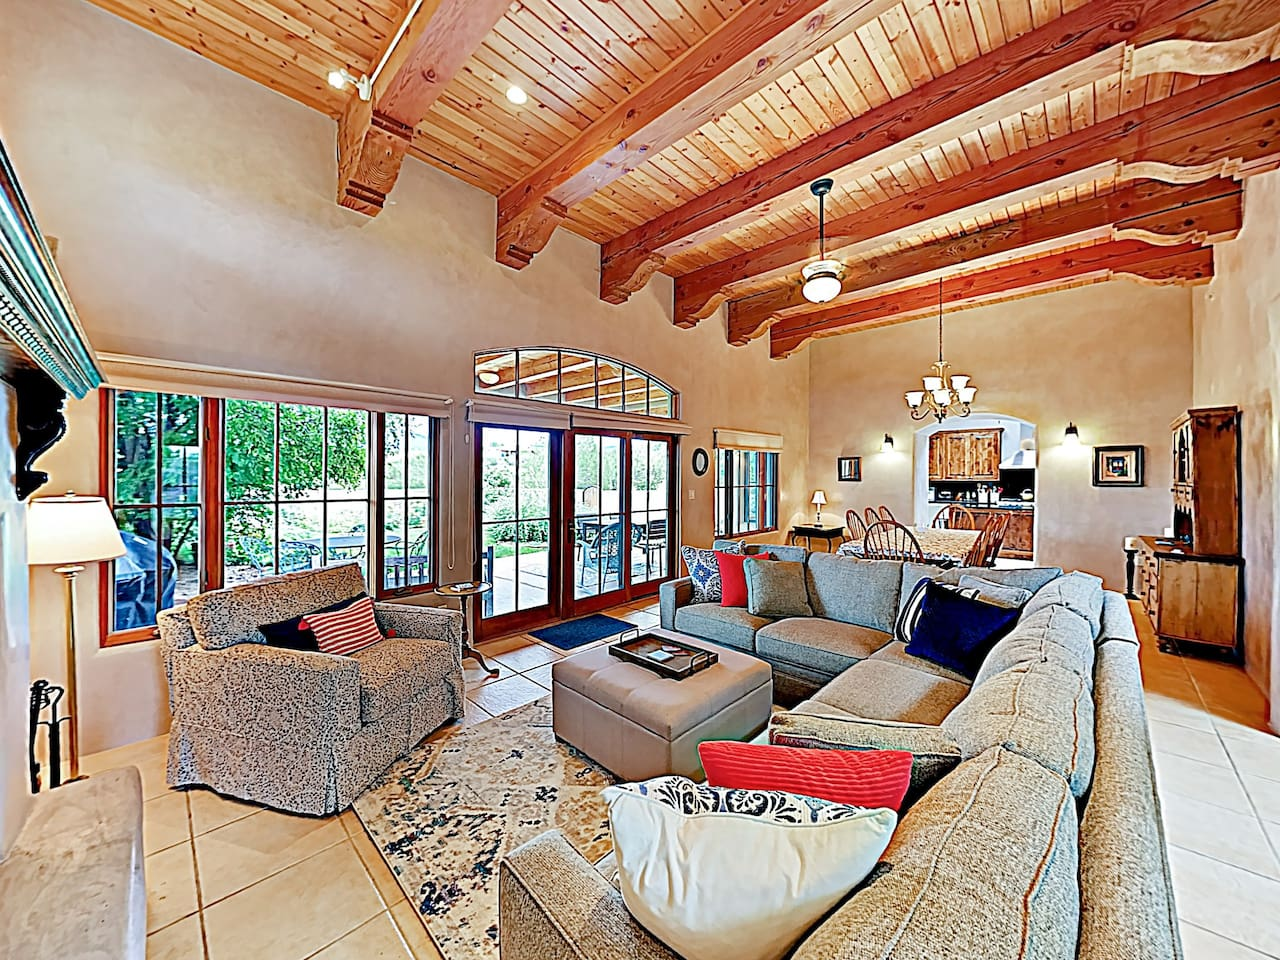 Welcome to Santa Fe! This spacious home is professionally managed by TurnKey Vacation Rentals.